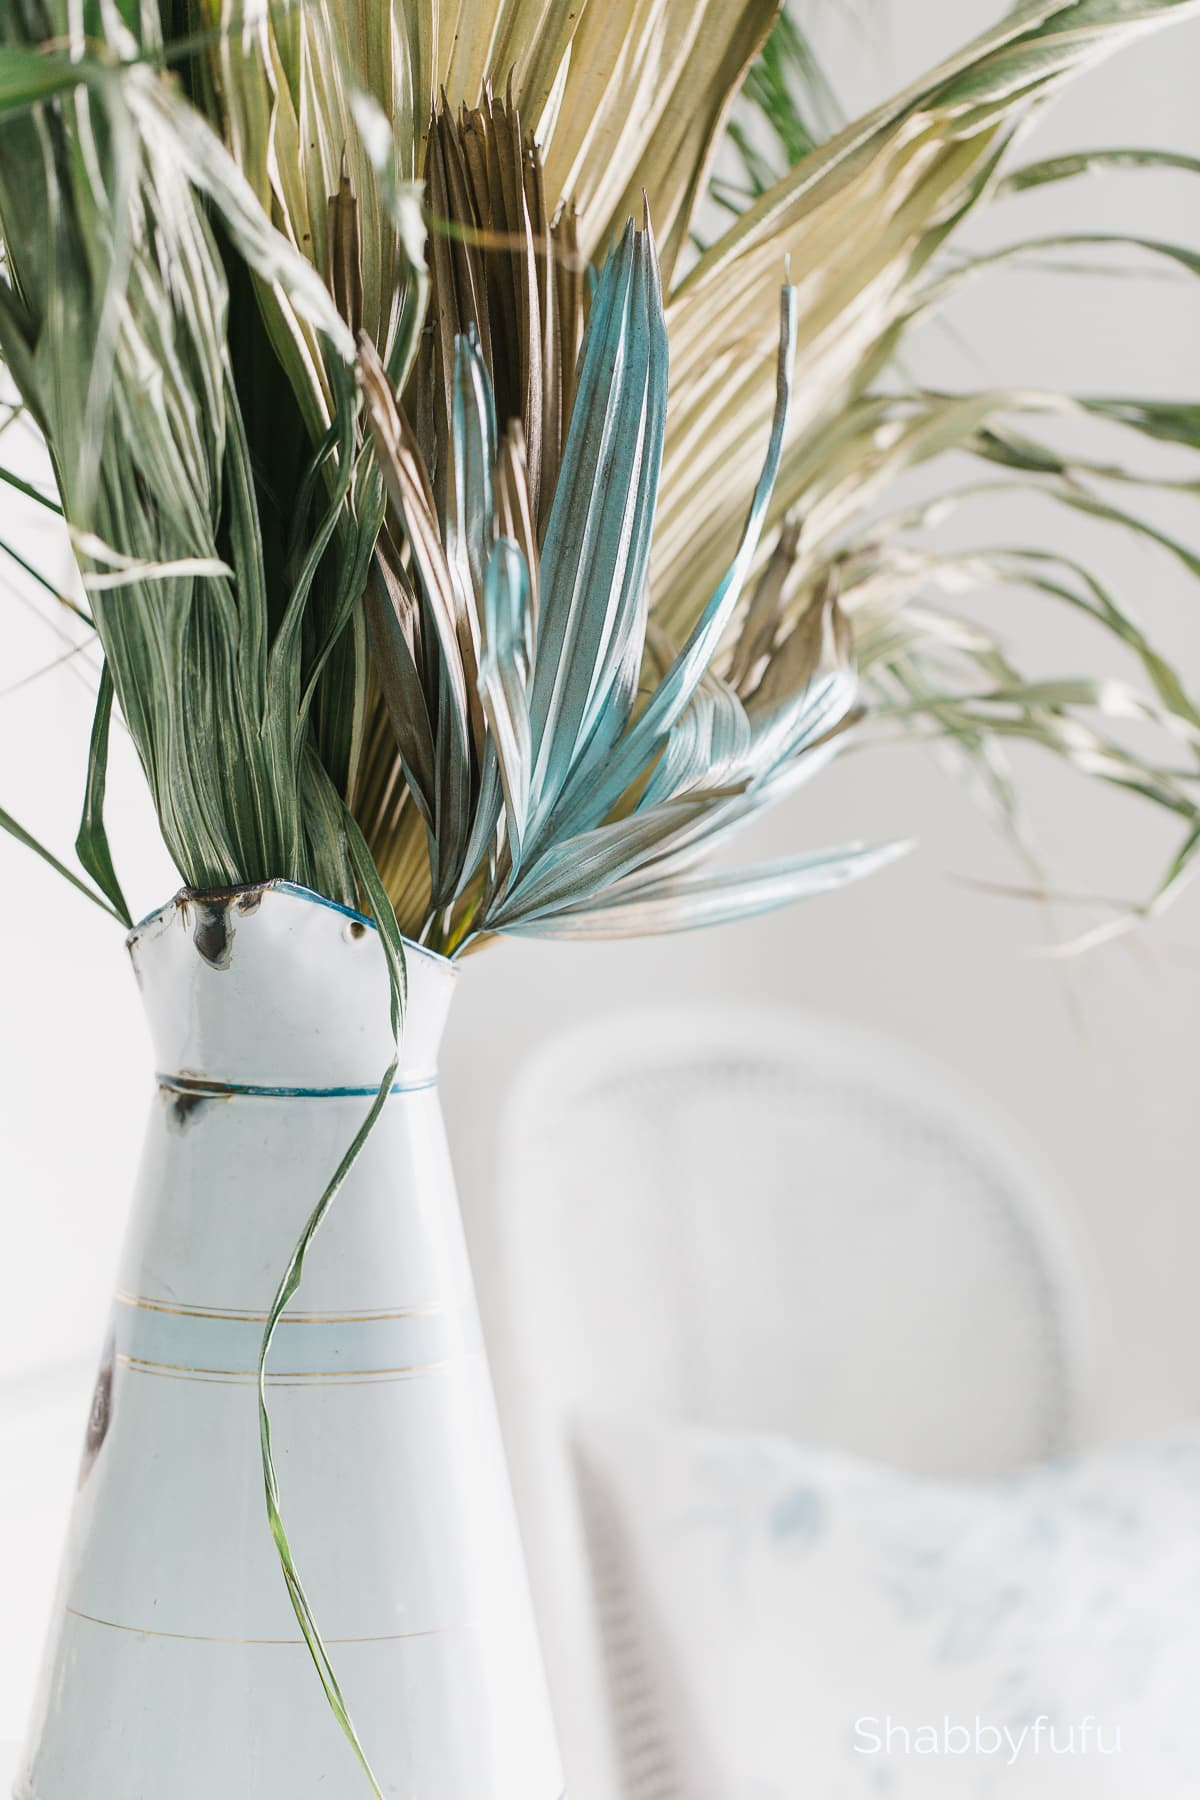 dried palm fronds in a table setting